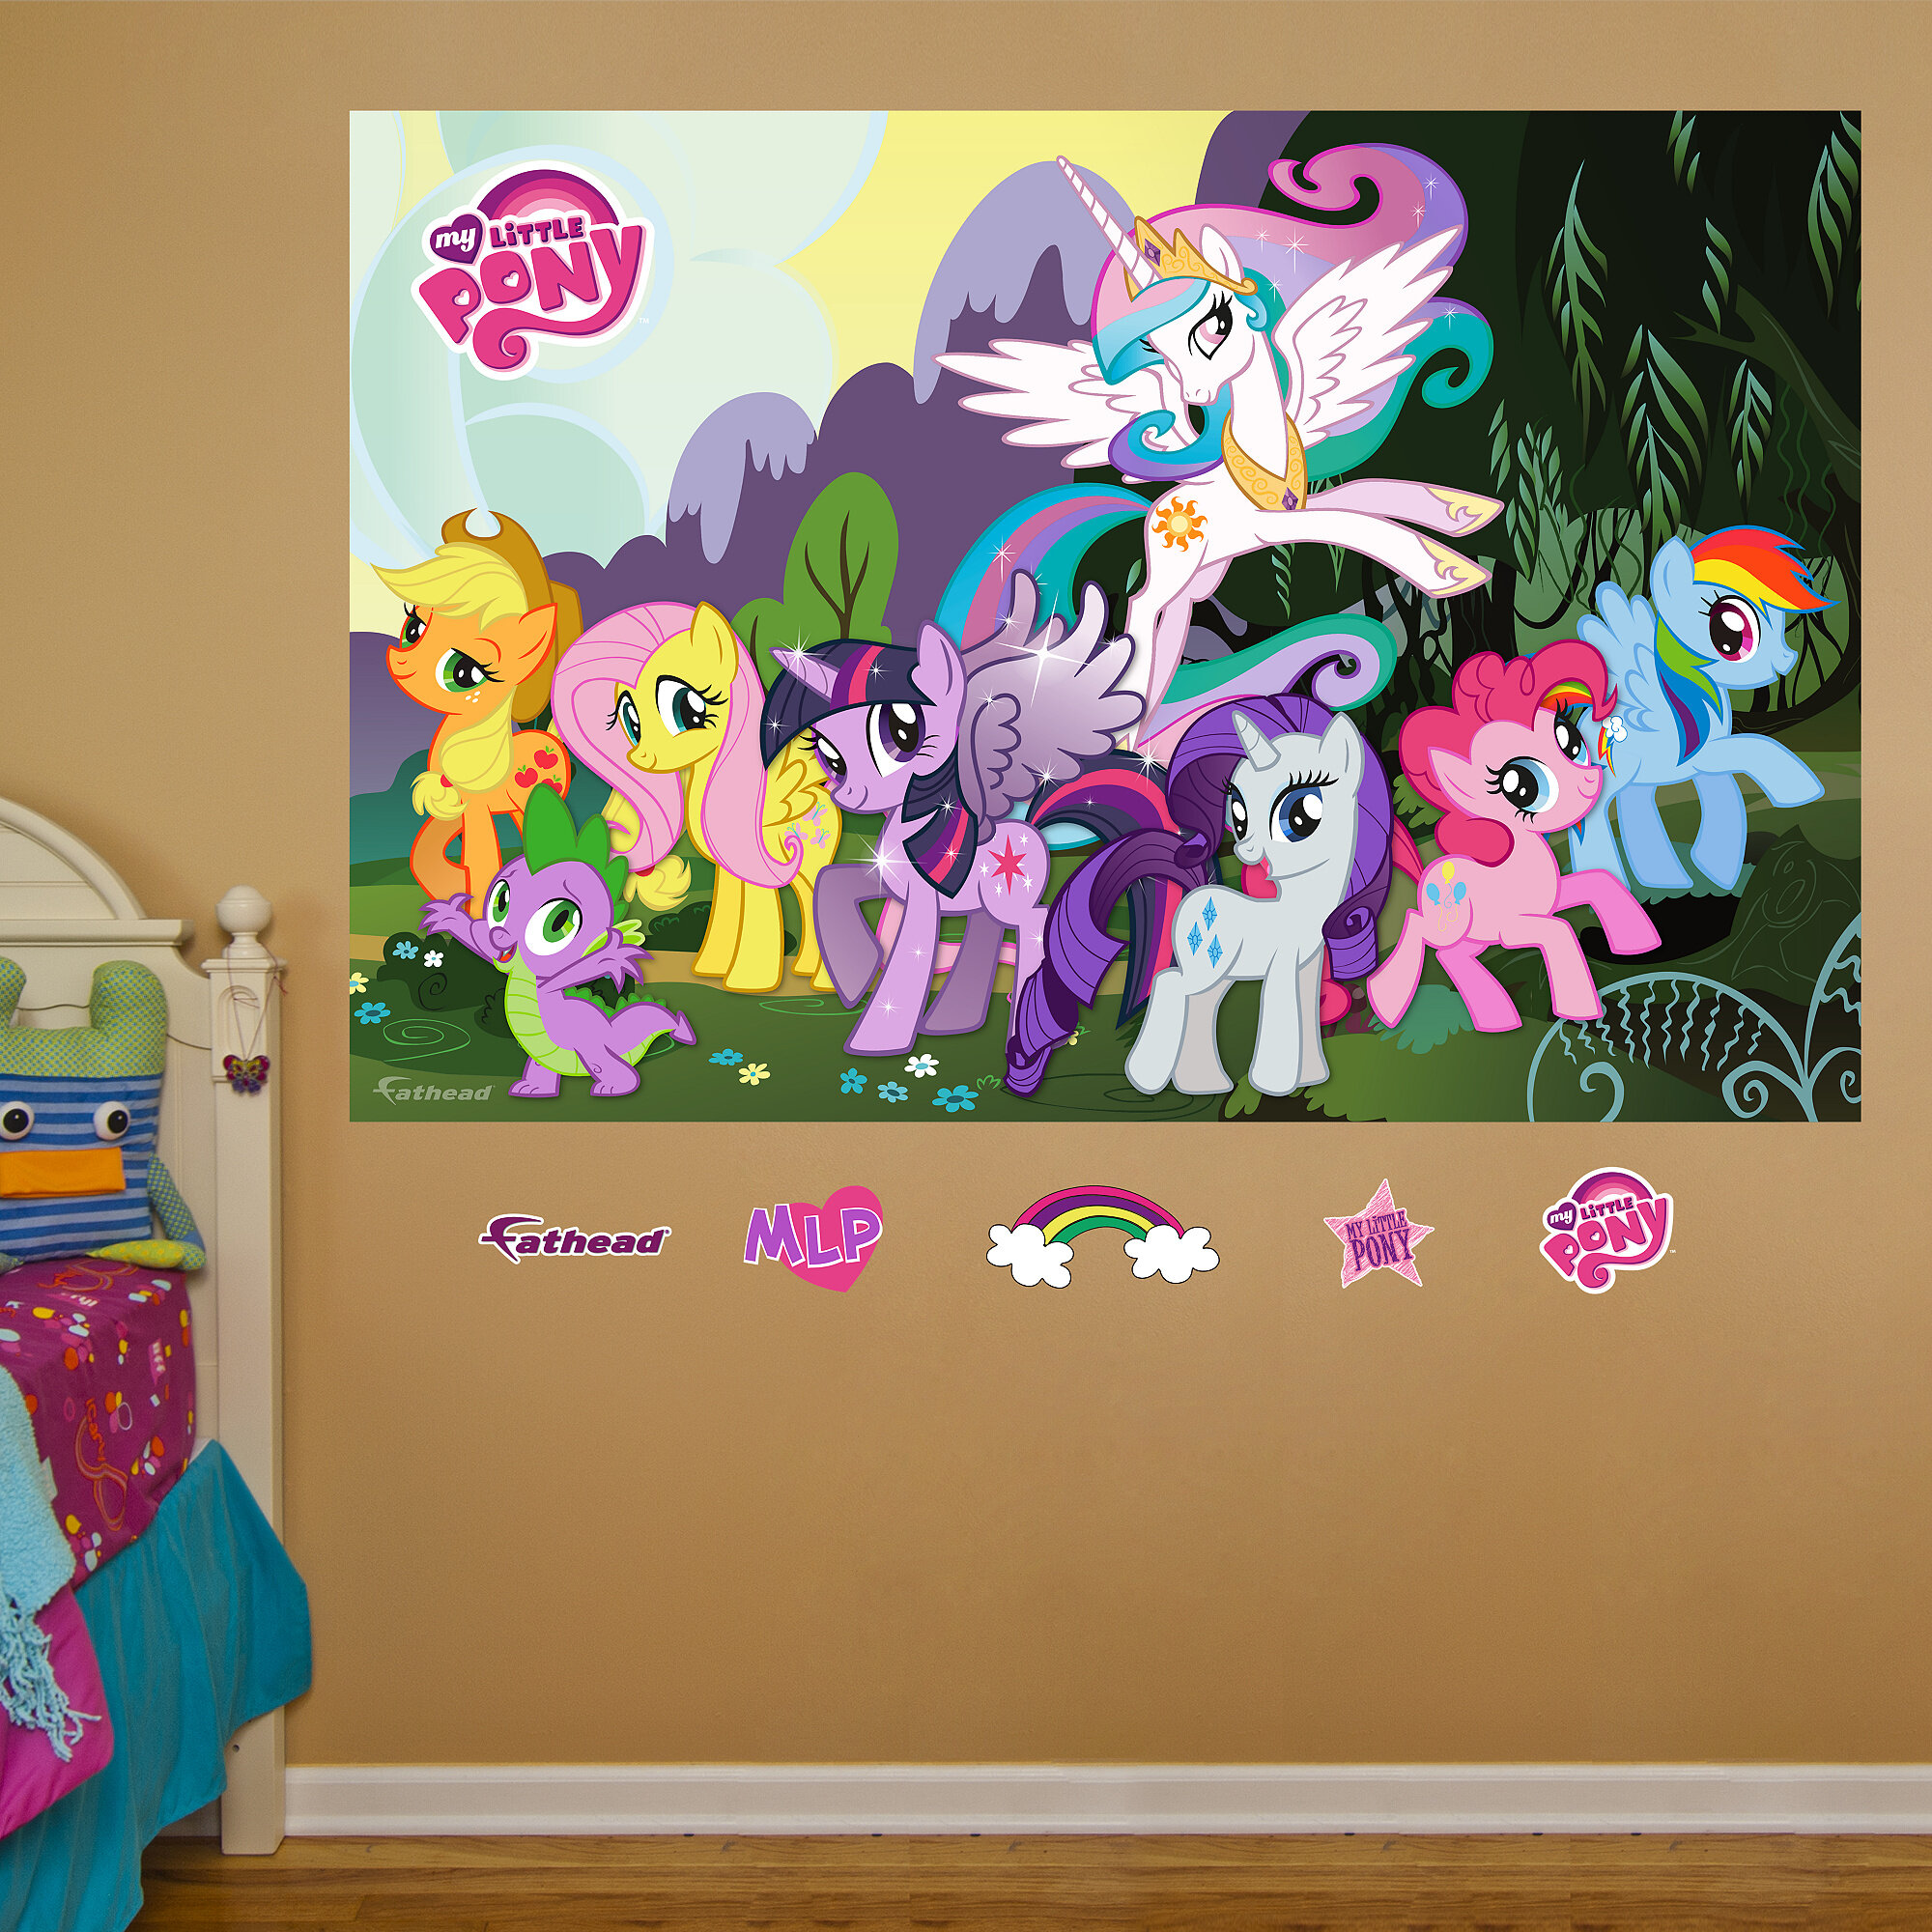 sc 1 st  Wayfair & Fathead Hasbro My Little Pony Peel and Stick Wall Decal | Wayfair